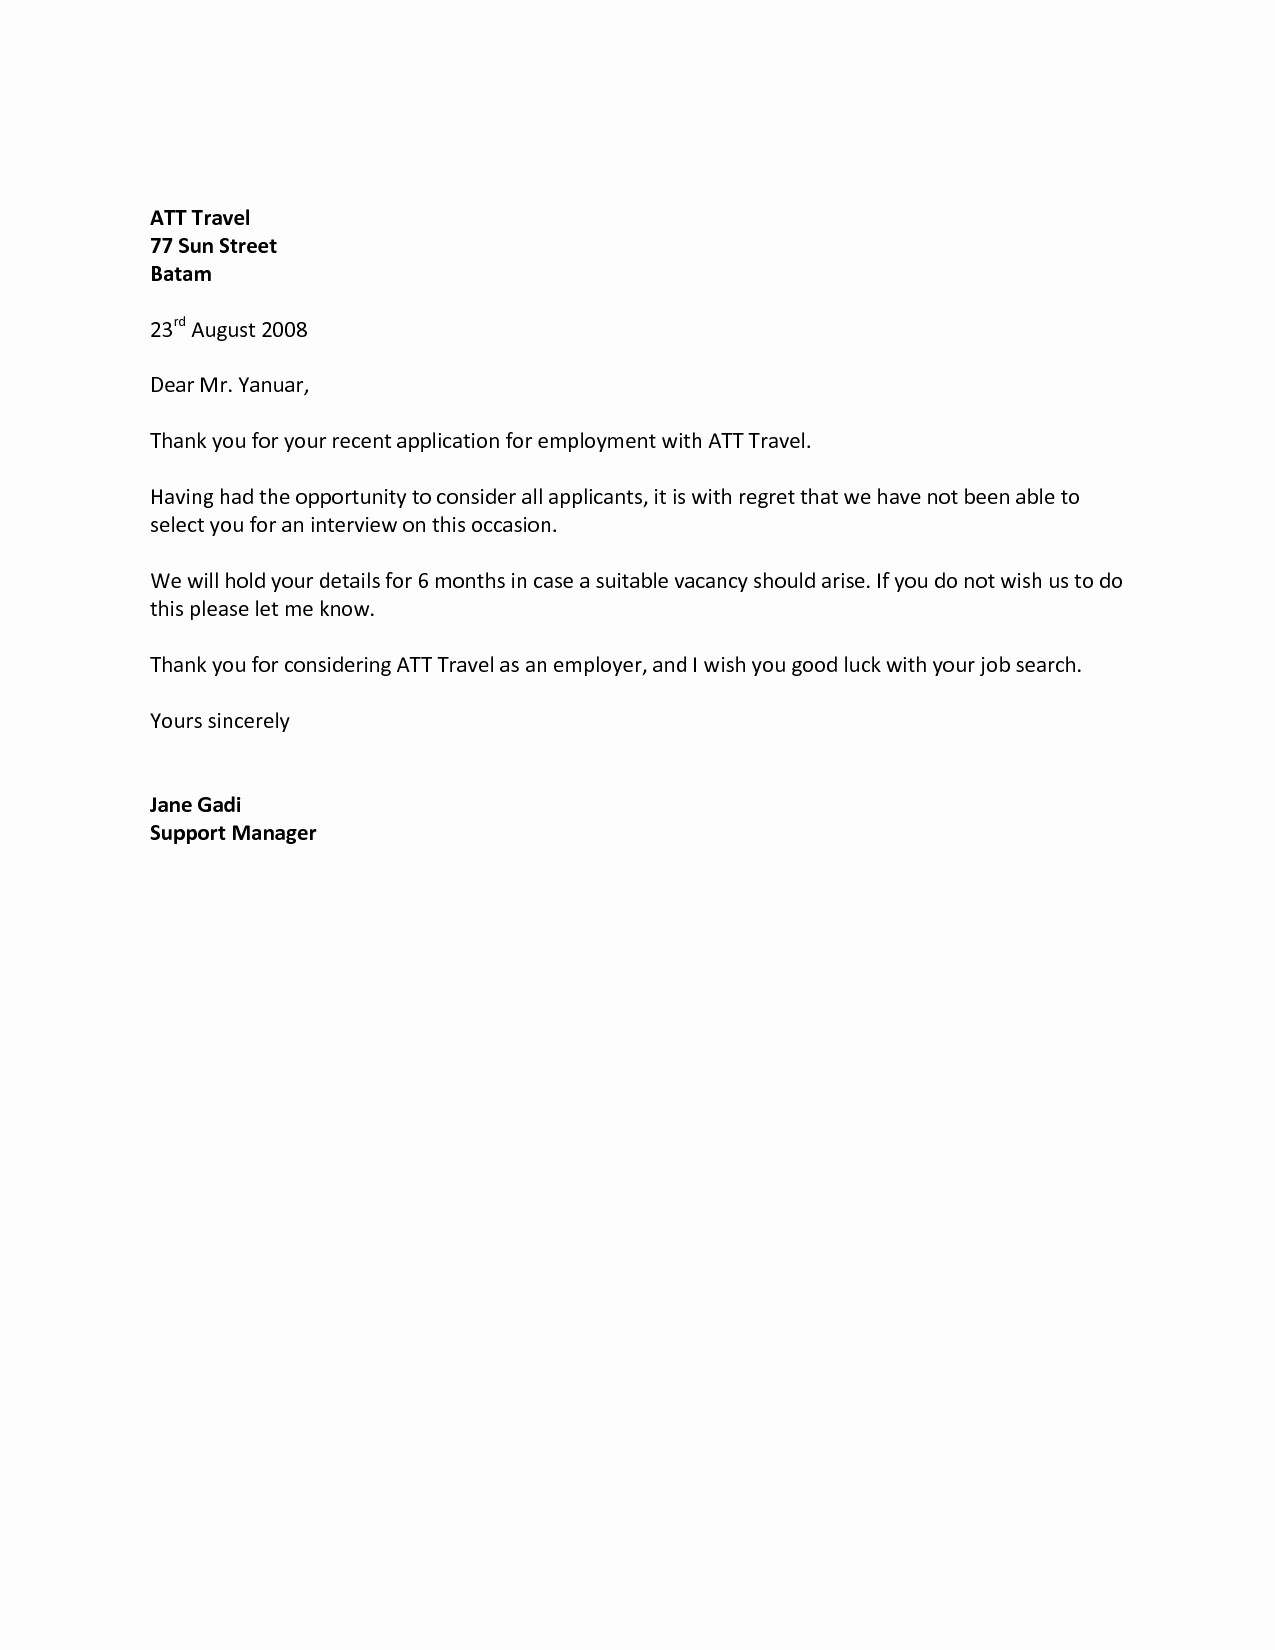 Job Rejection Email Template Inspirational Job Rejection Letter